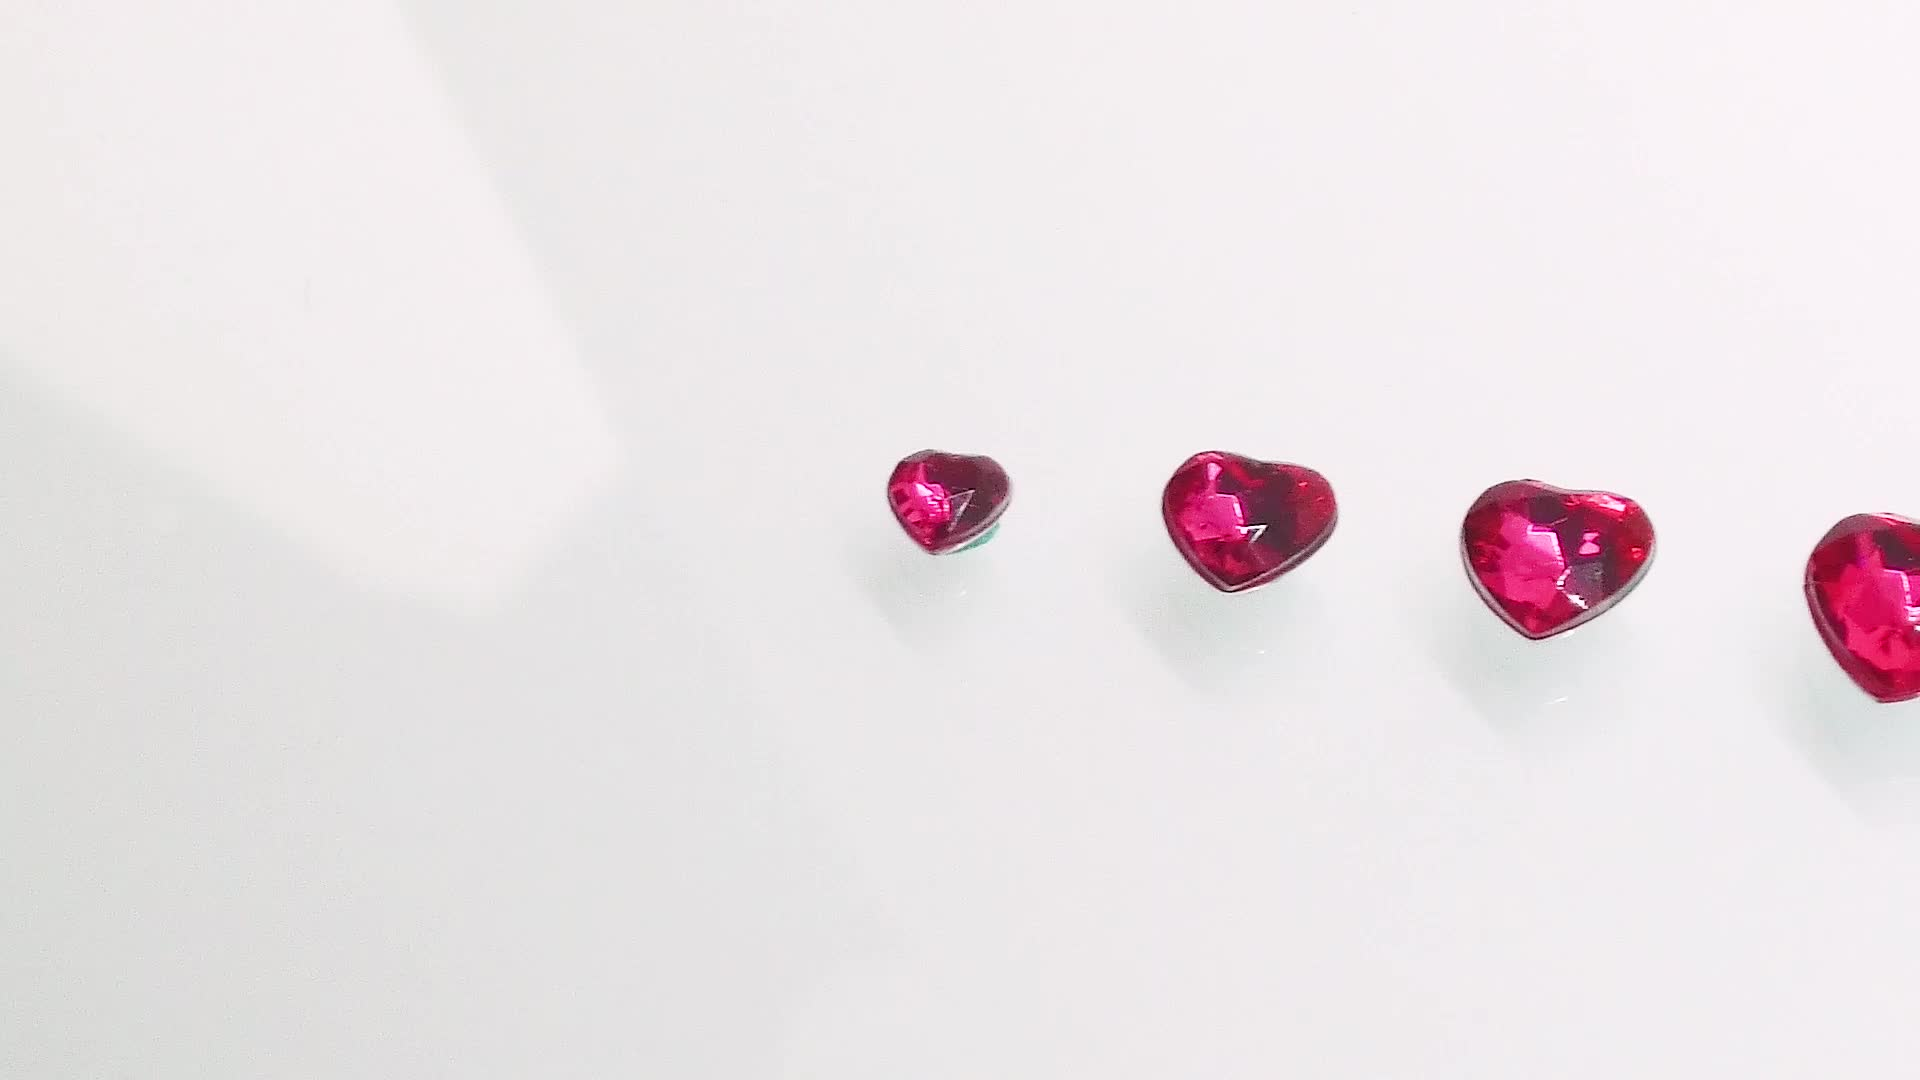 Wholesale Acrylic Crystal Chaton Bead in Different Sizes